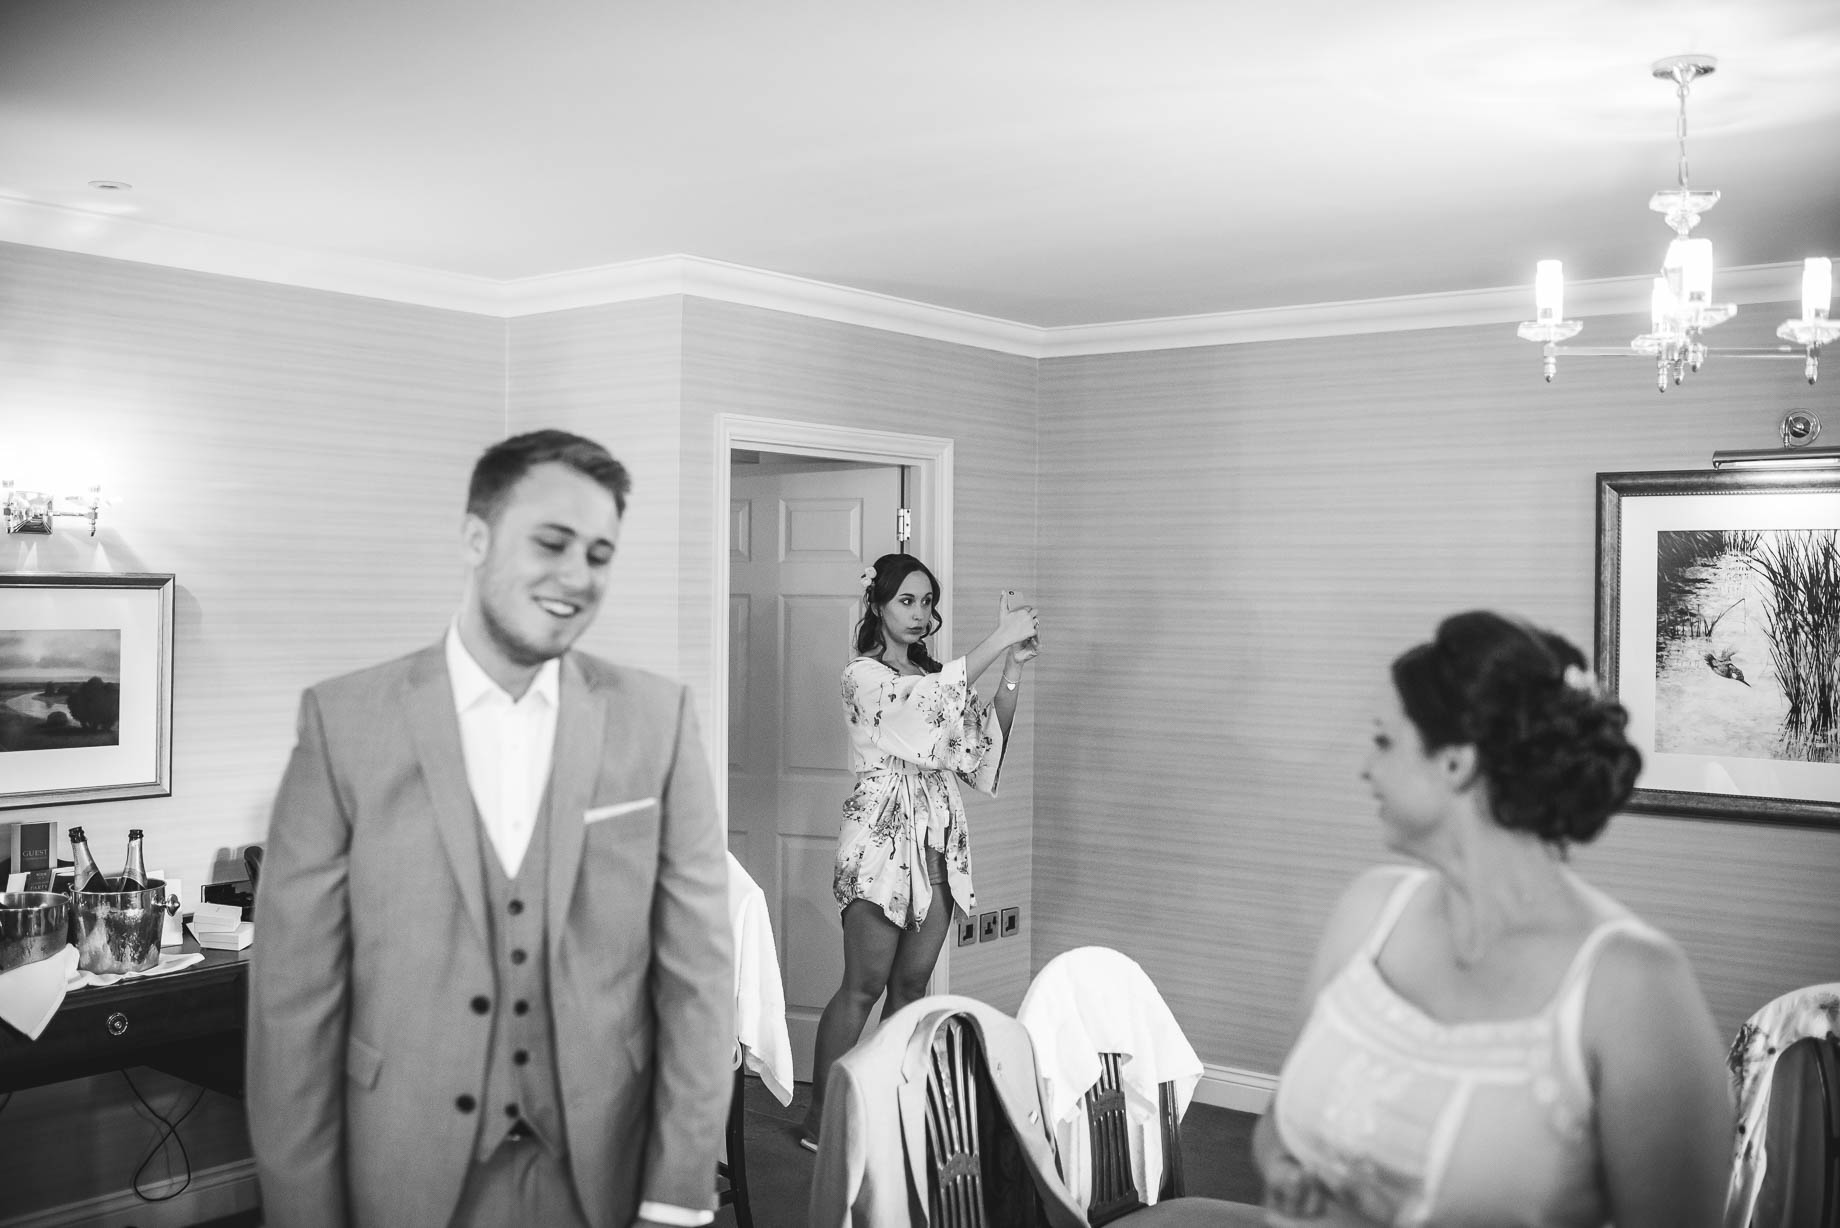 Luton Hoo wedding photography by Guy Collier Photography - Lauren and Gem (26 of 178)